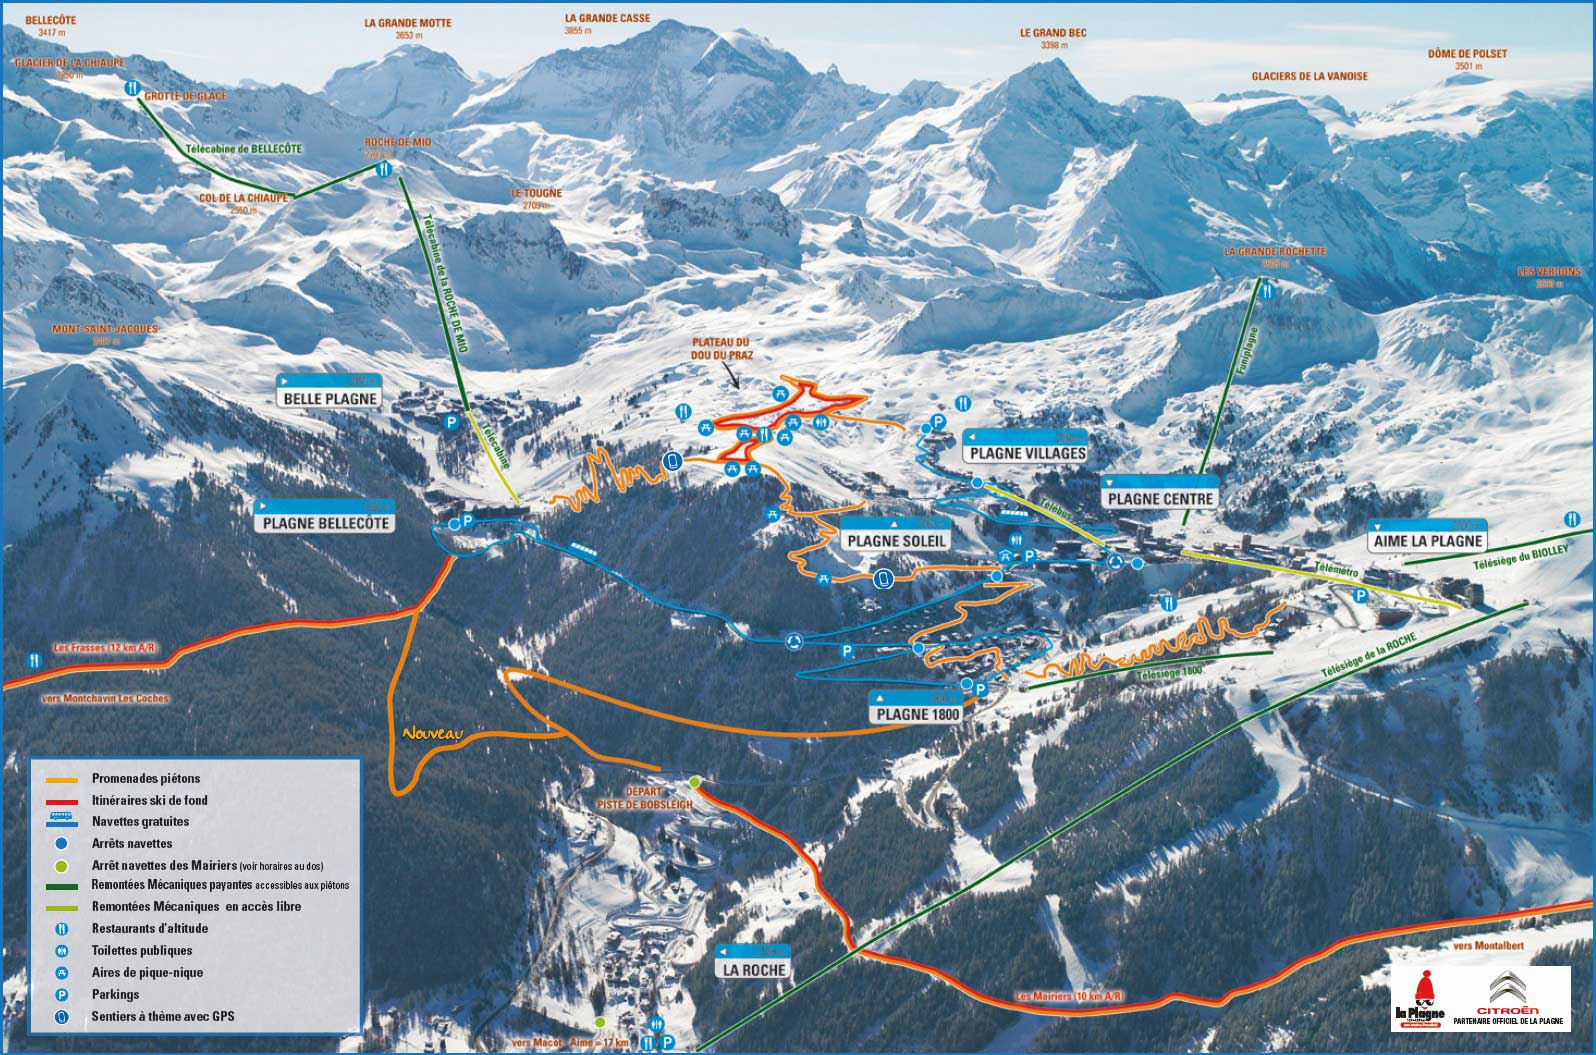 La Plagne crosscountry skiing piste map Alpskicom